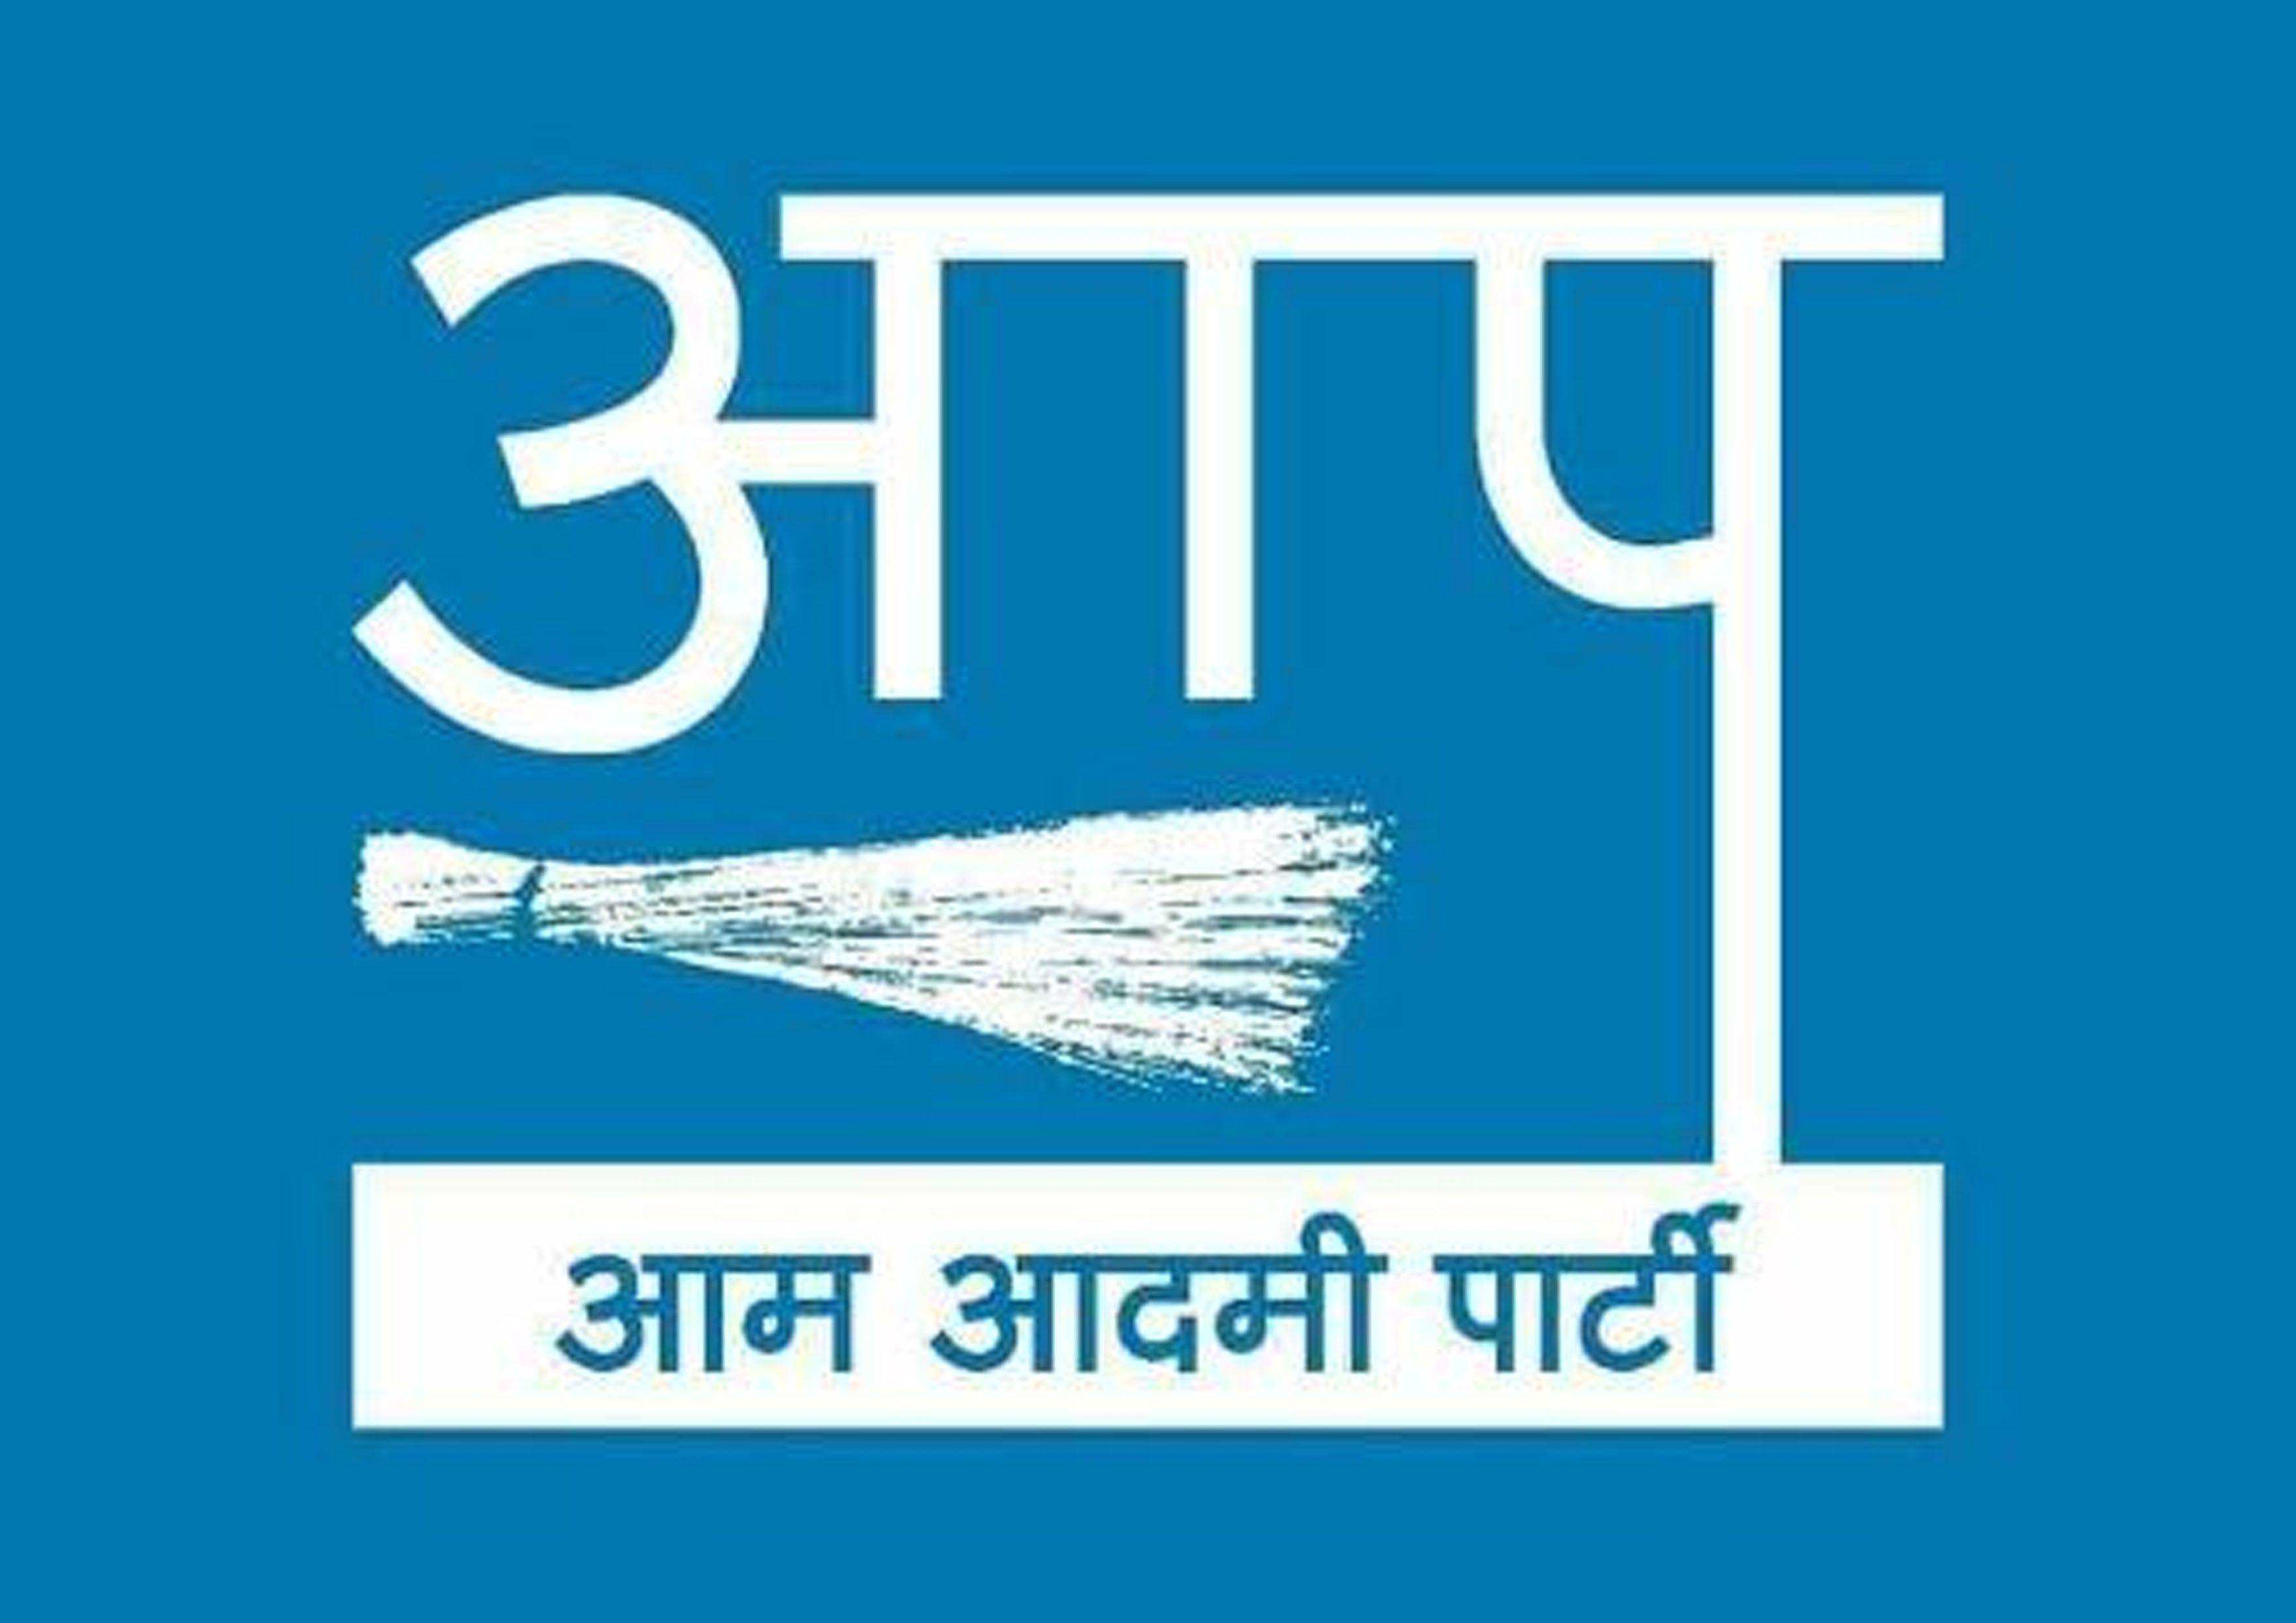 MAHALAXMI ART & CRAFT AAP Logo Aaam Aadmi Party Poster Without Frame.